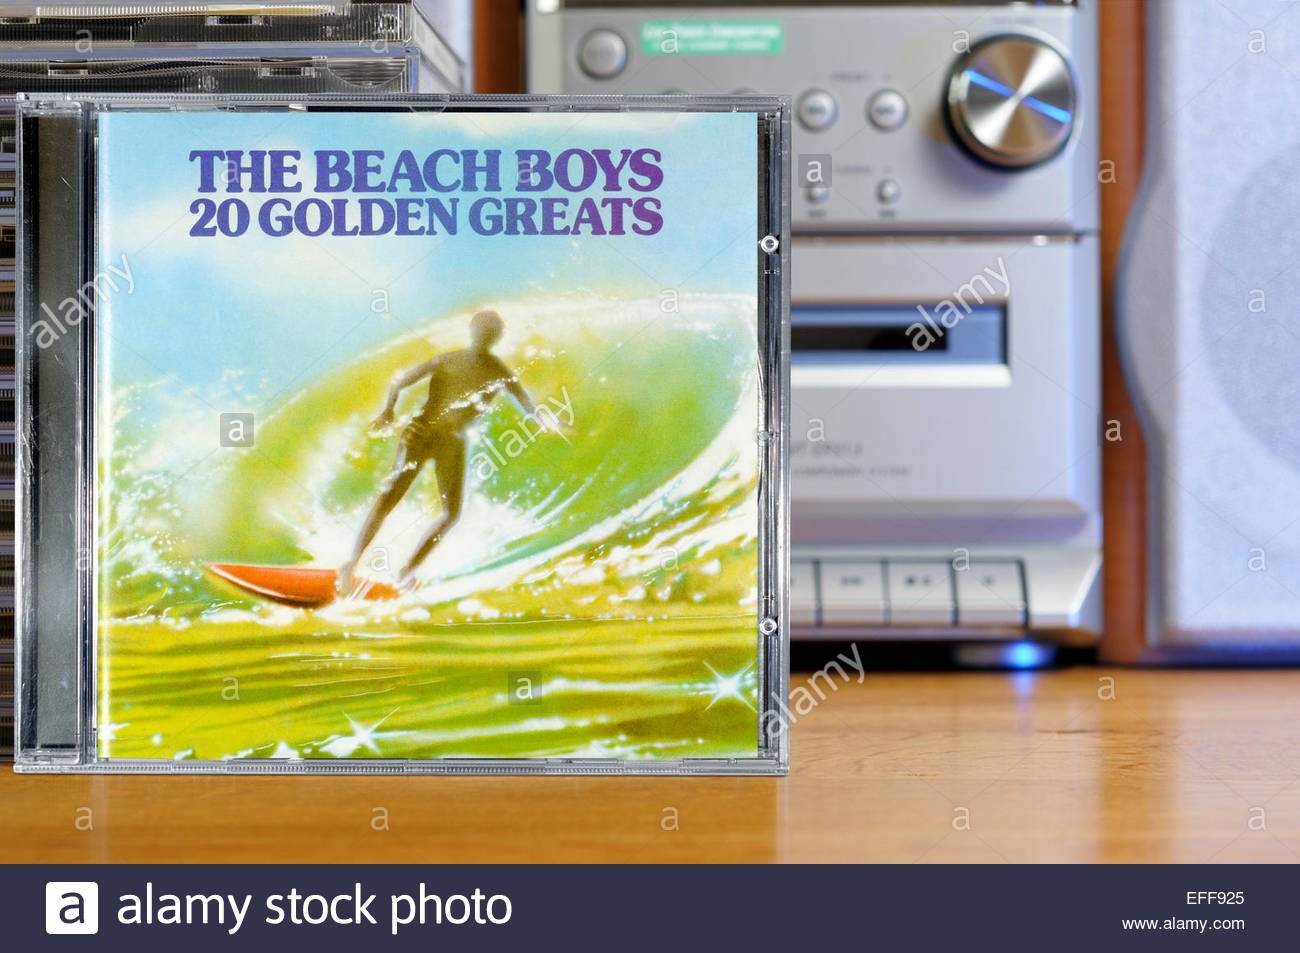 Album Cover Beach Boys Stock Photos Amp Album Cover Beach